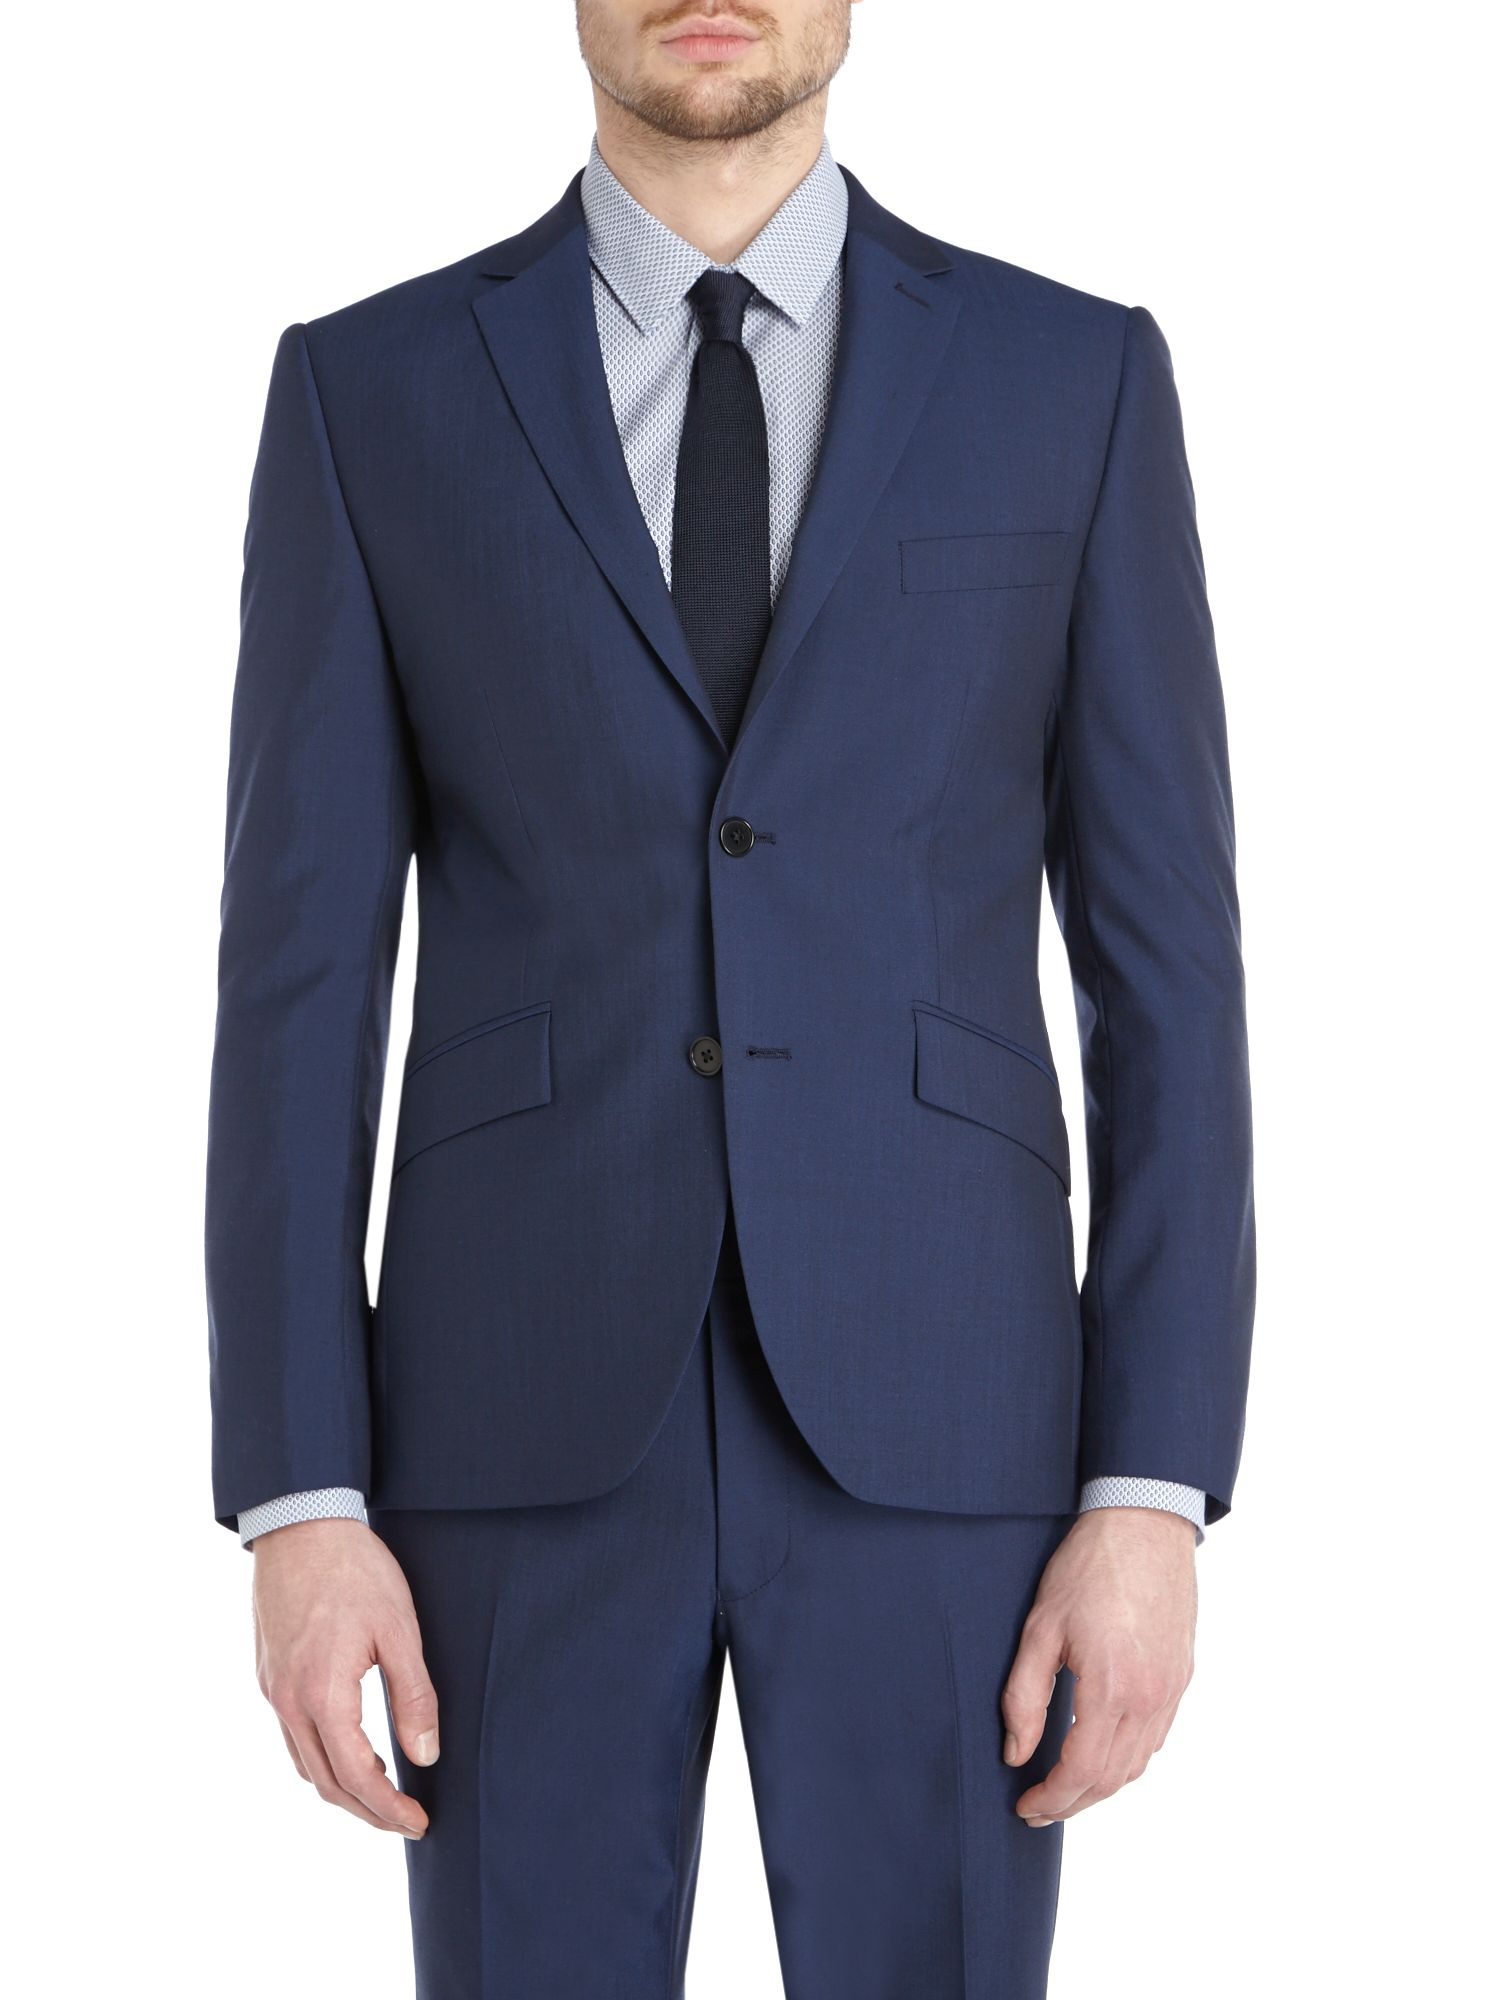 Starkin Slim Fit Notch Lapel Suit Jacket